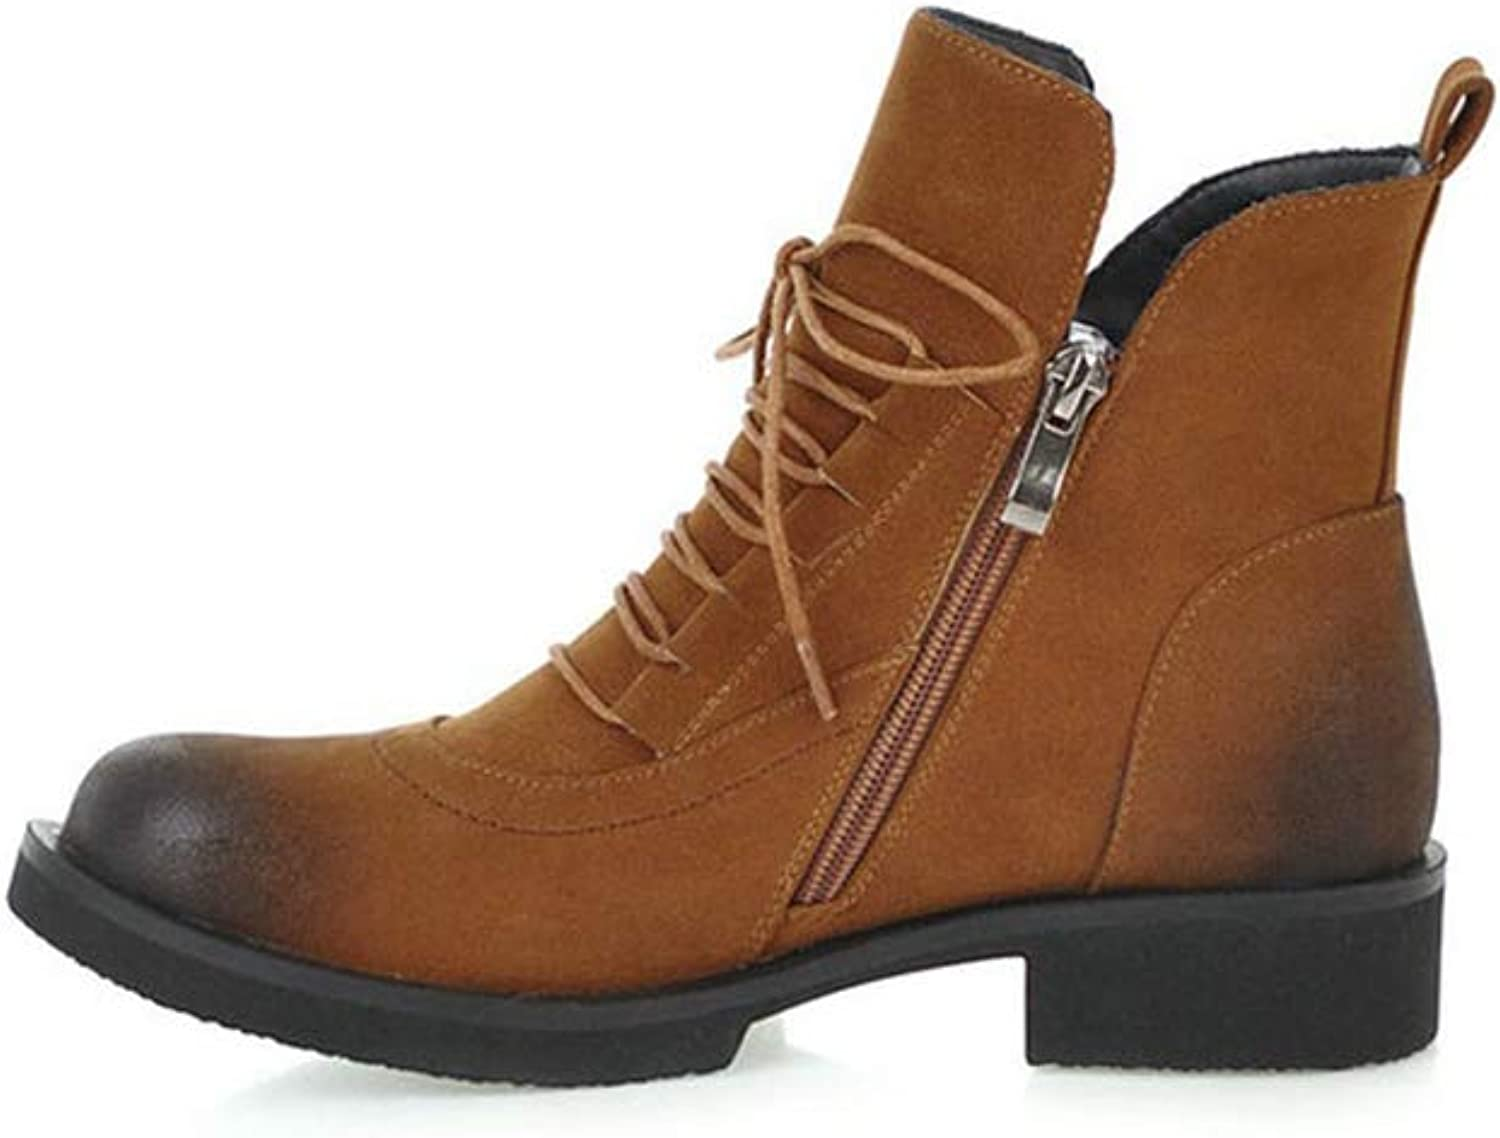 SENERY Winter Boots Fashion Women Ankle Boots Platform All Match Elegant Casual Big Size Booties